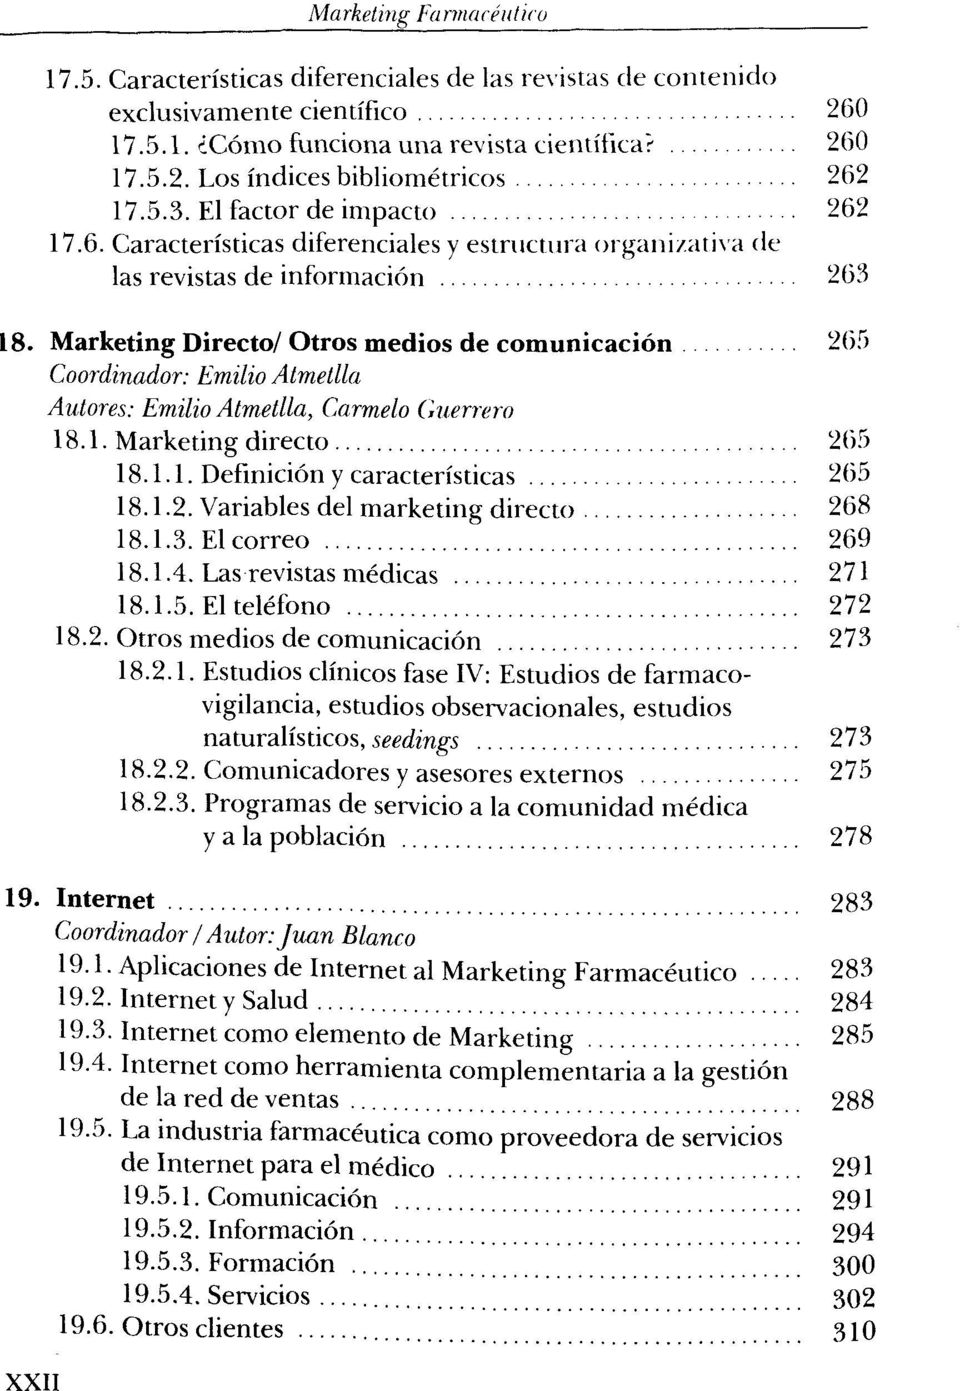 Marketing Farmaceutico Libro Marketing Farmacéutico Pdf